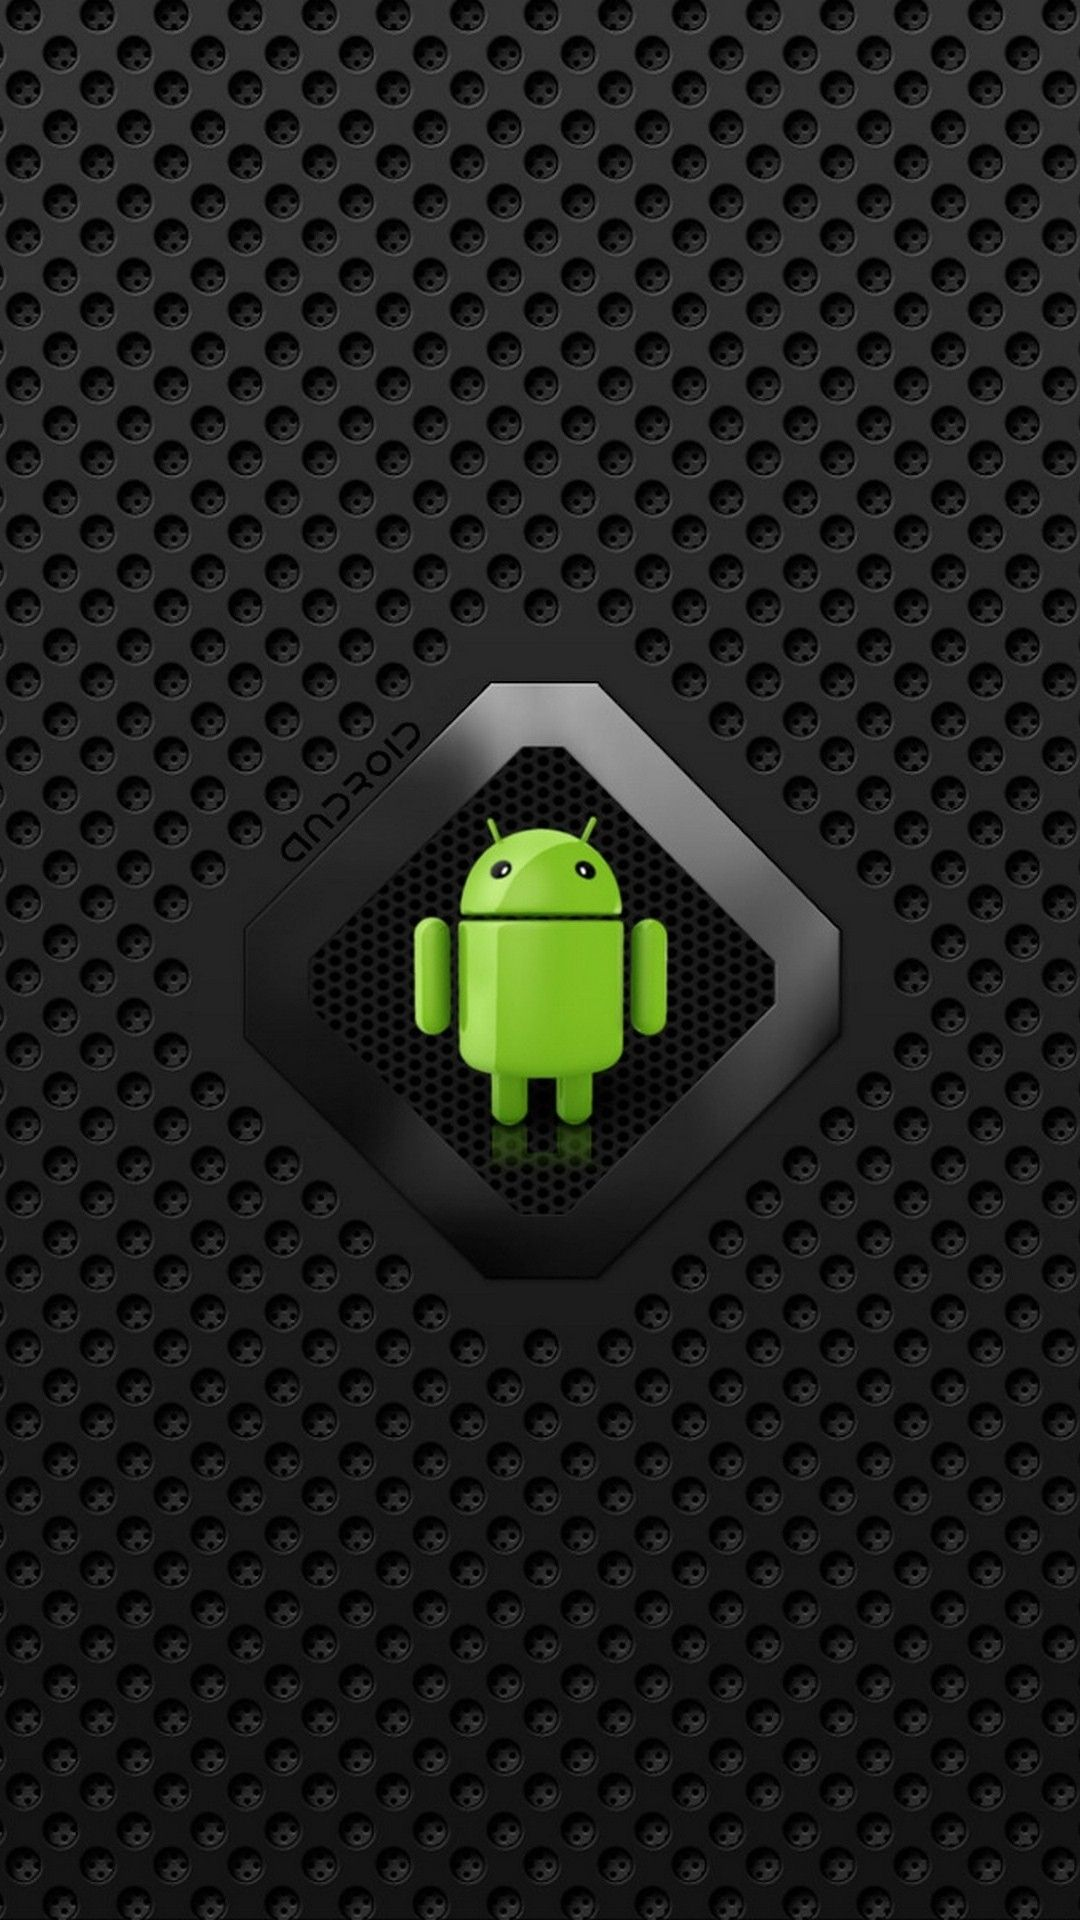 Cool Android 4k Wallpapers - Wallpaper Cave